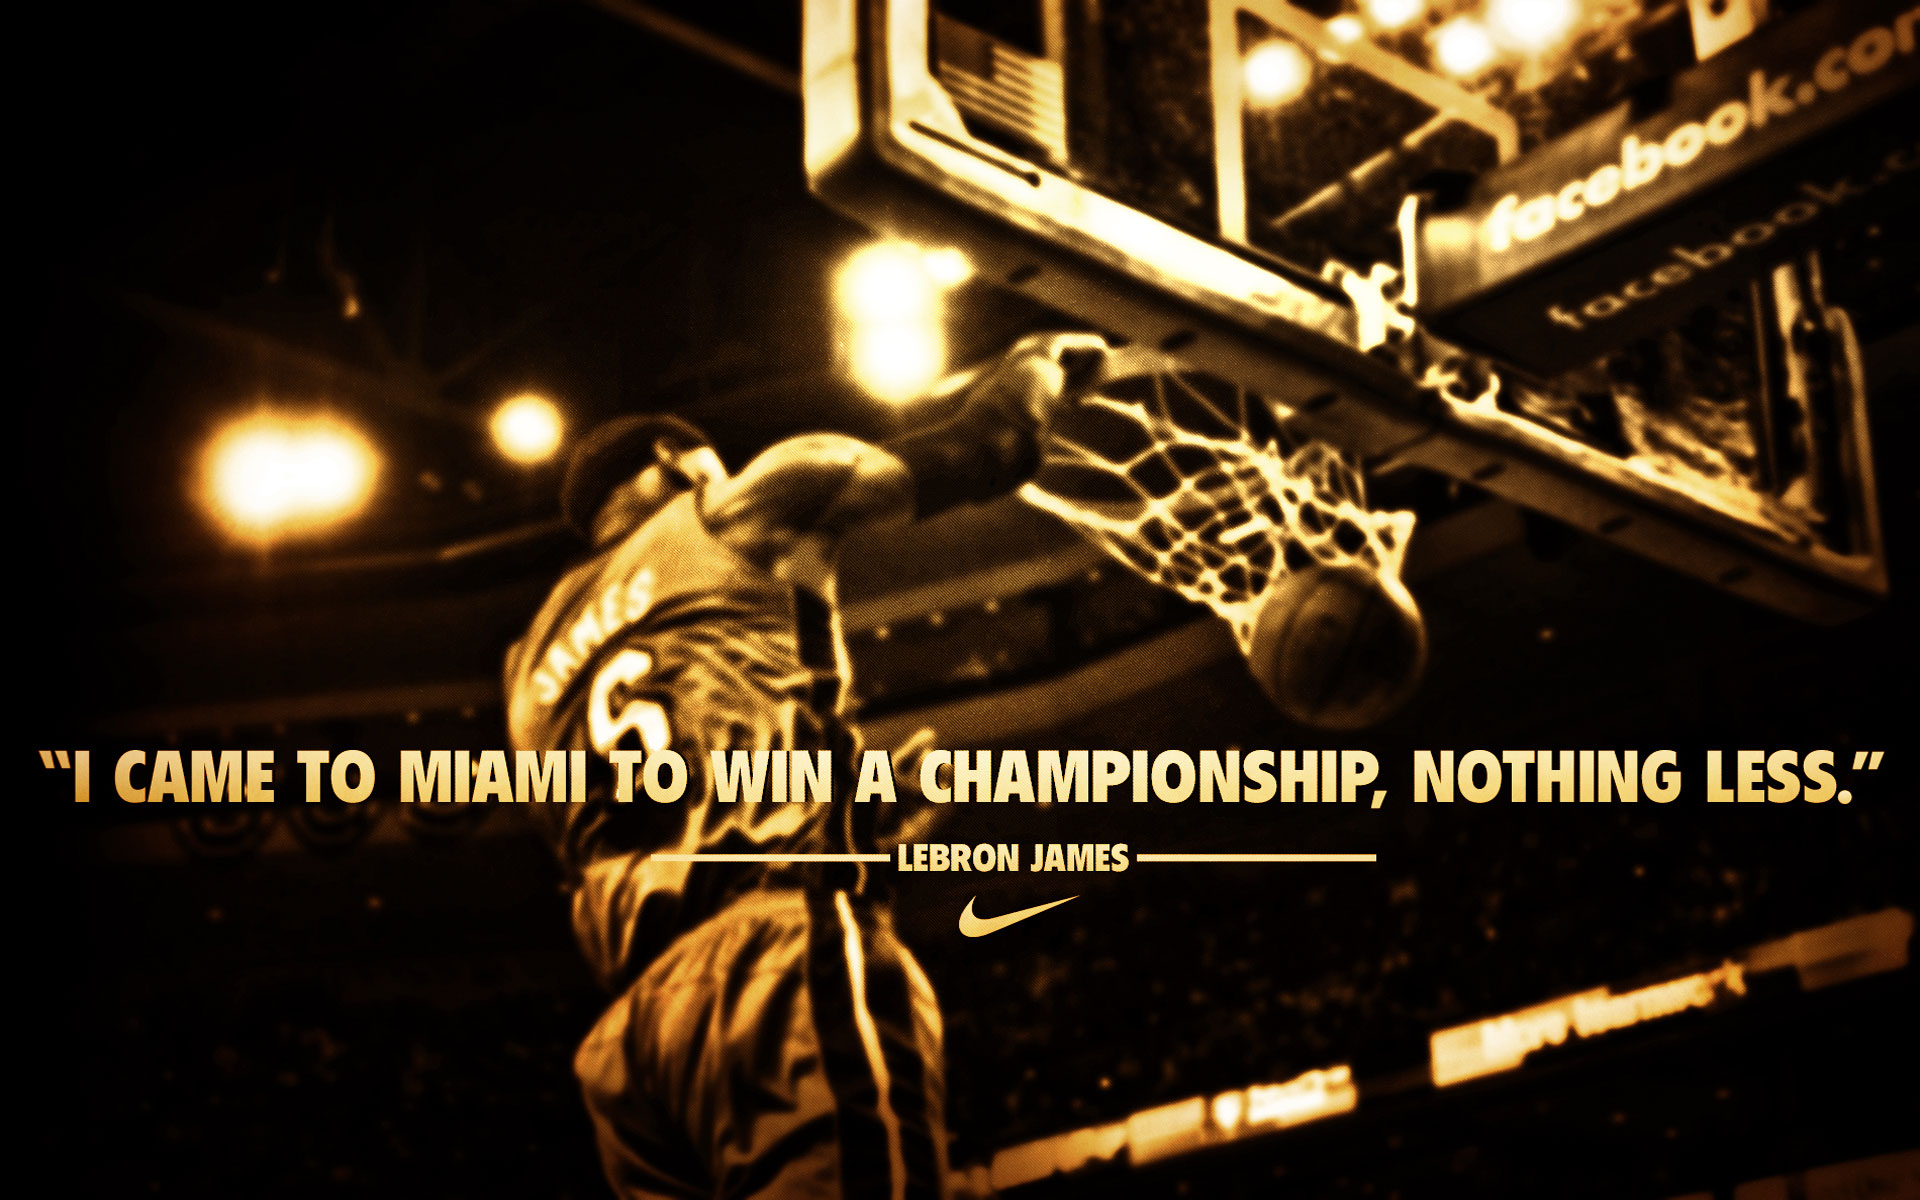 LeBron James  Quote (About miami championship champion basketball)